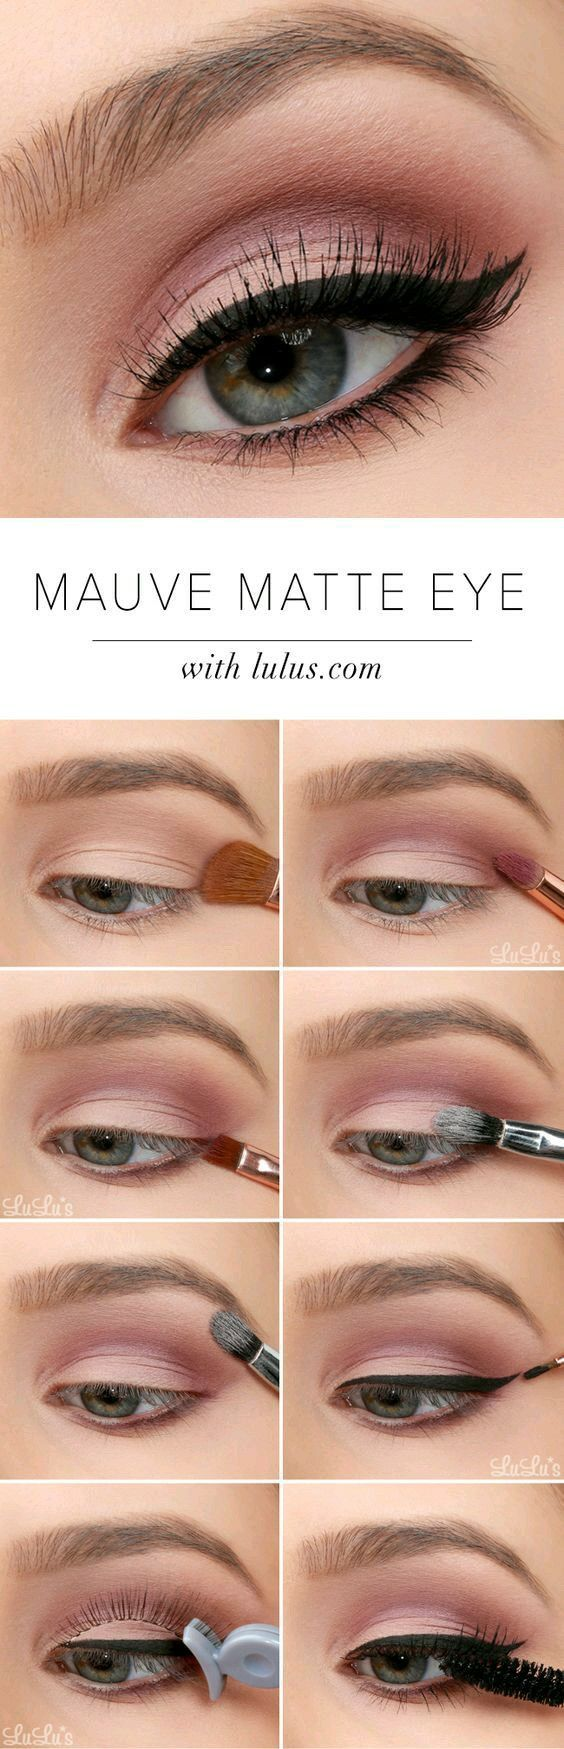 71 Best How To Do Eyeshadow Images On Pinterest Eyediagramjpg Want Be A Makeup Pro In Quick Time These 5 Tips And Tricks Are Worth Knowing Then Read Fashion For U